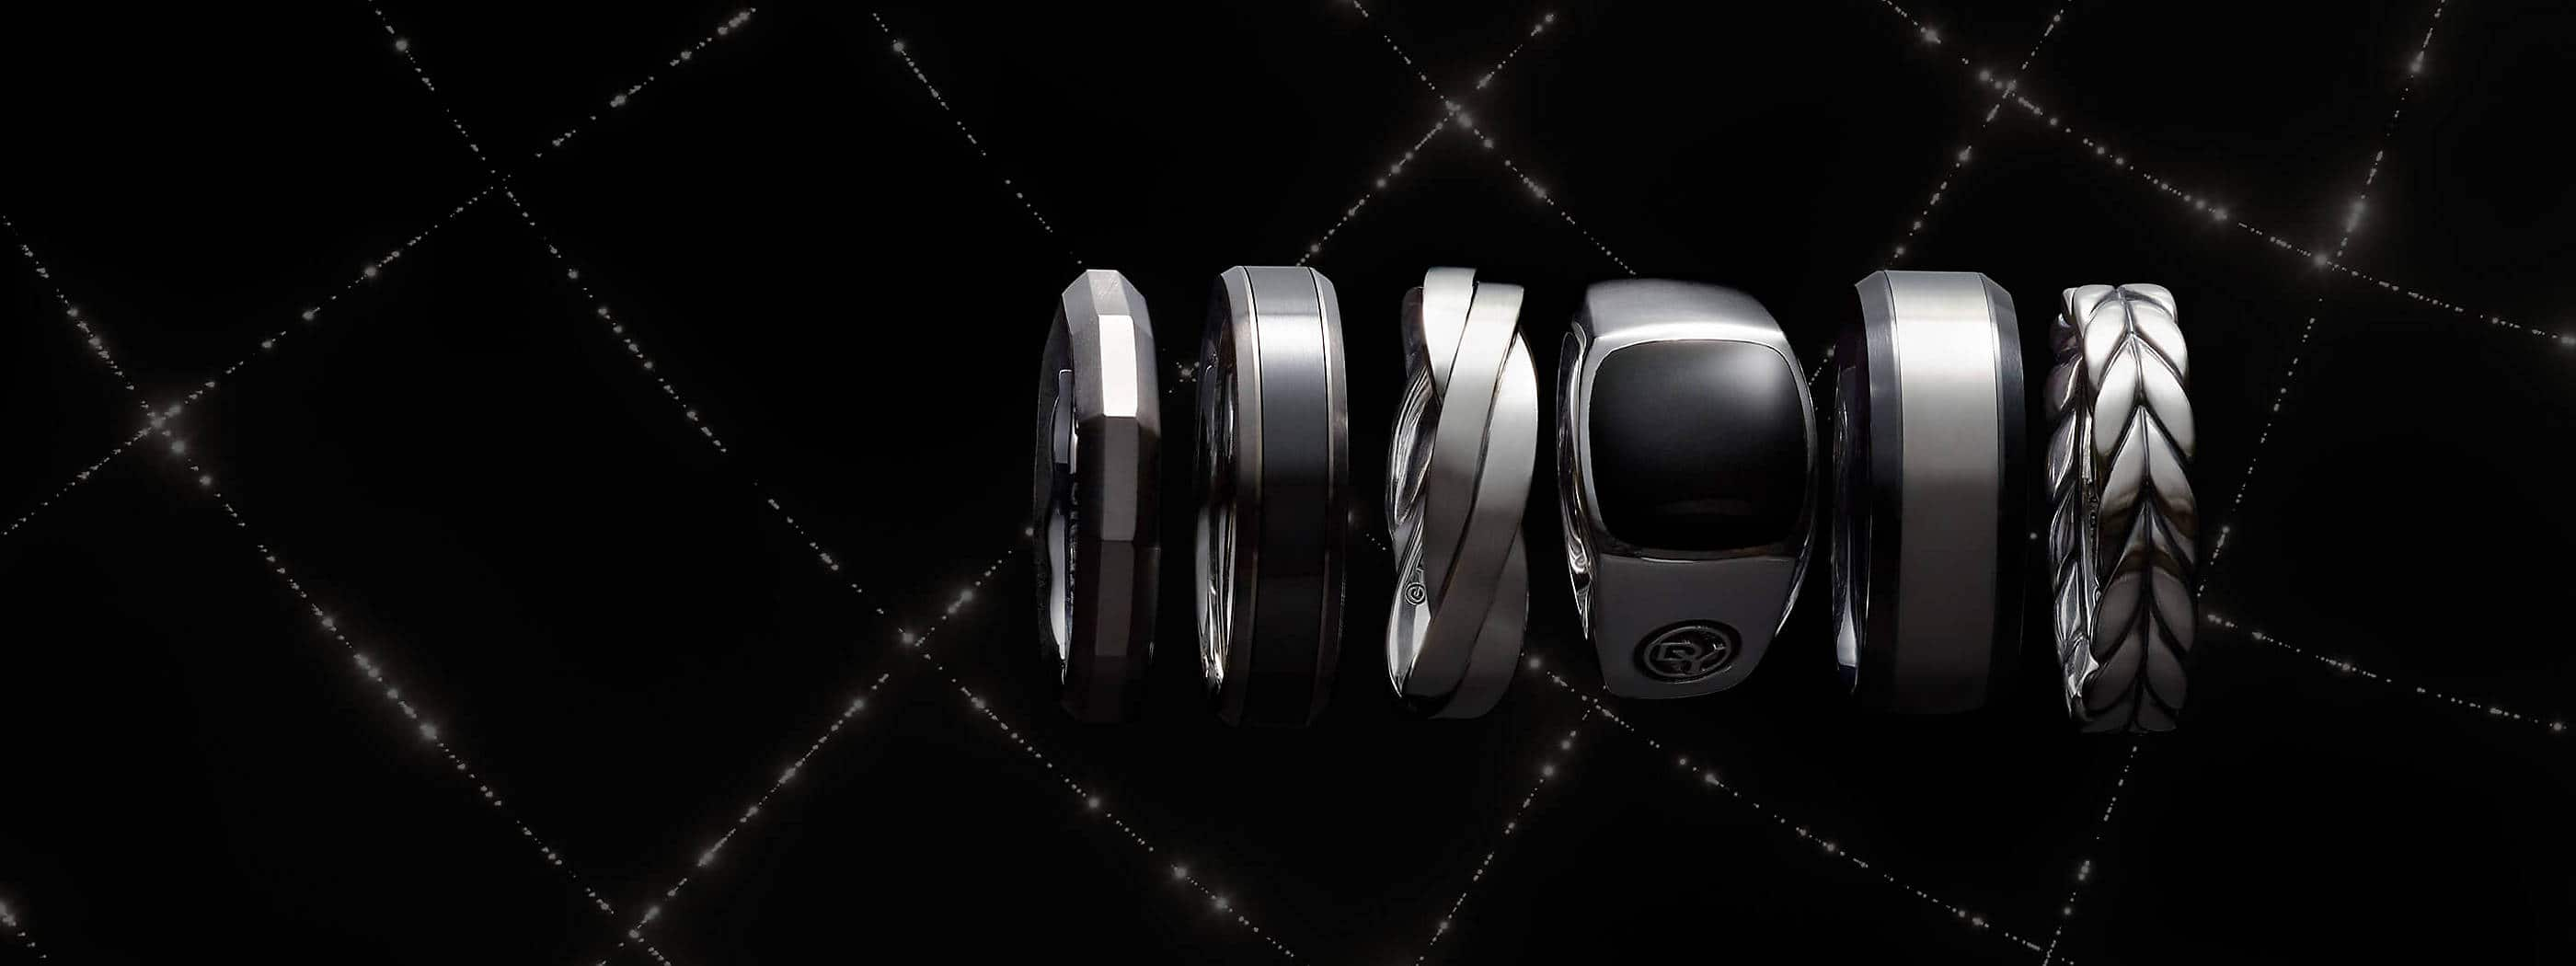 A color photograph shows a horizontal row of seven David Yurman men's bands from the Faceted, Beveled, Cable, Streamline and Chevron collections floating in front of a black background with white latitude and longitude lines. The jewelry is crafted with grey or black titanium with sterling silver, or sterling silver.